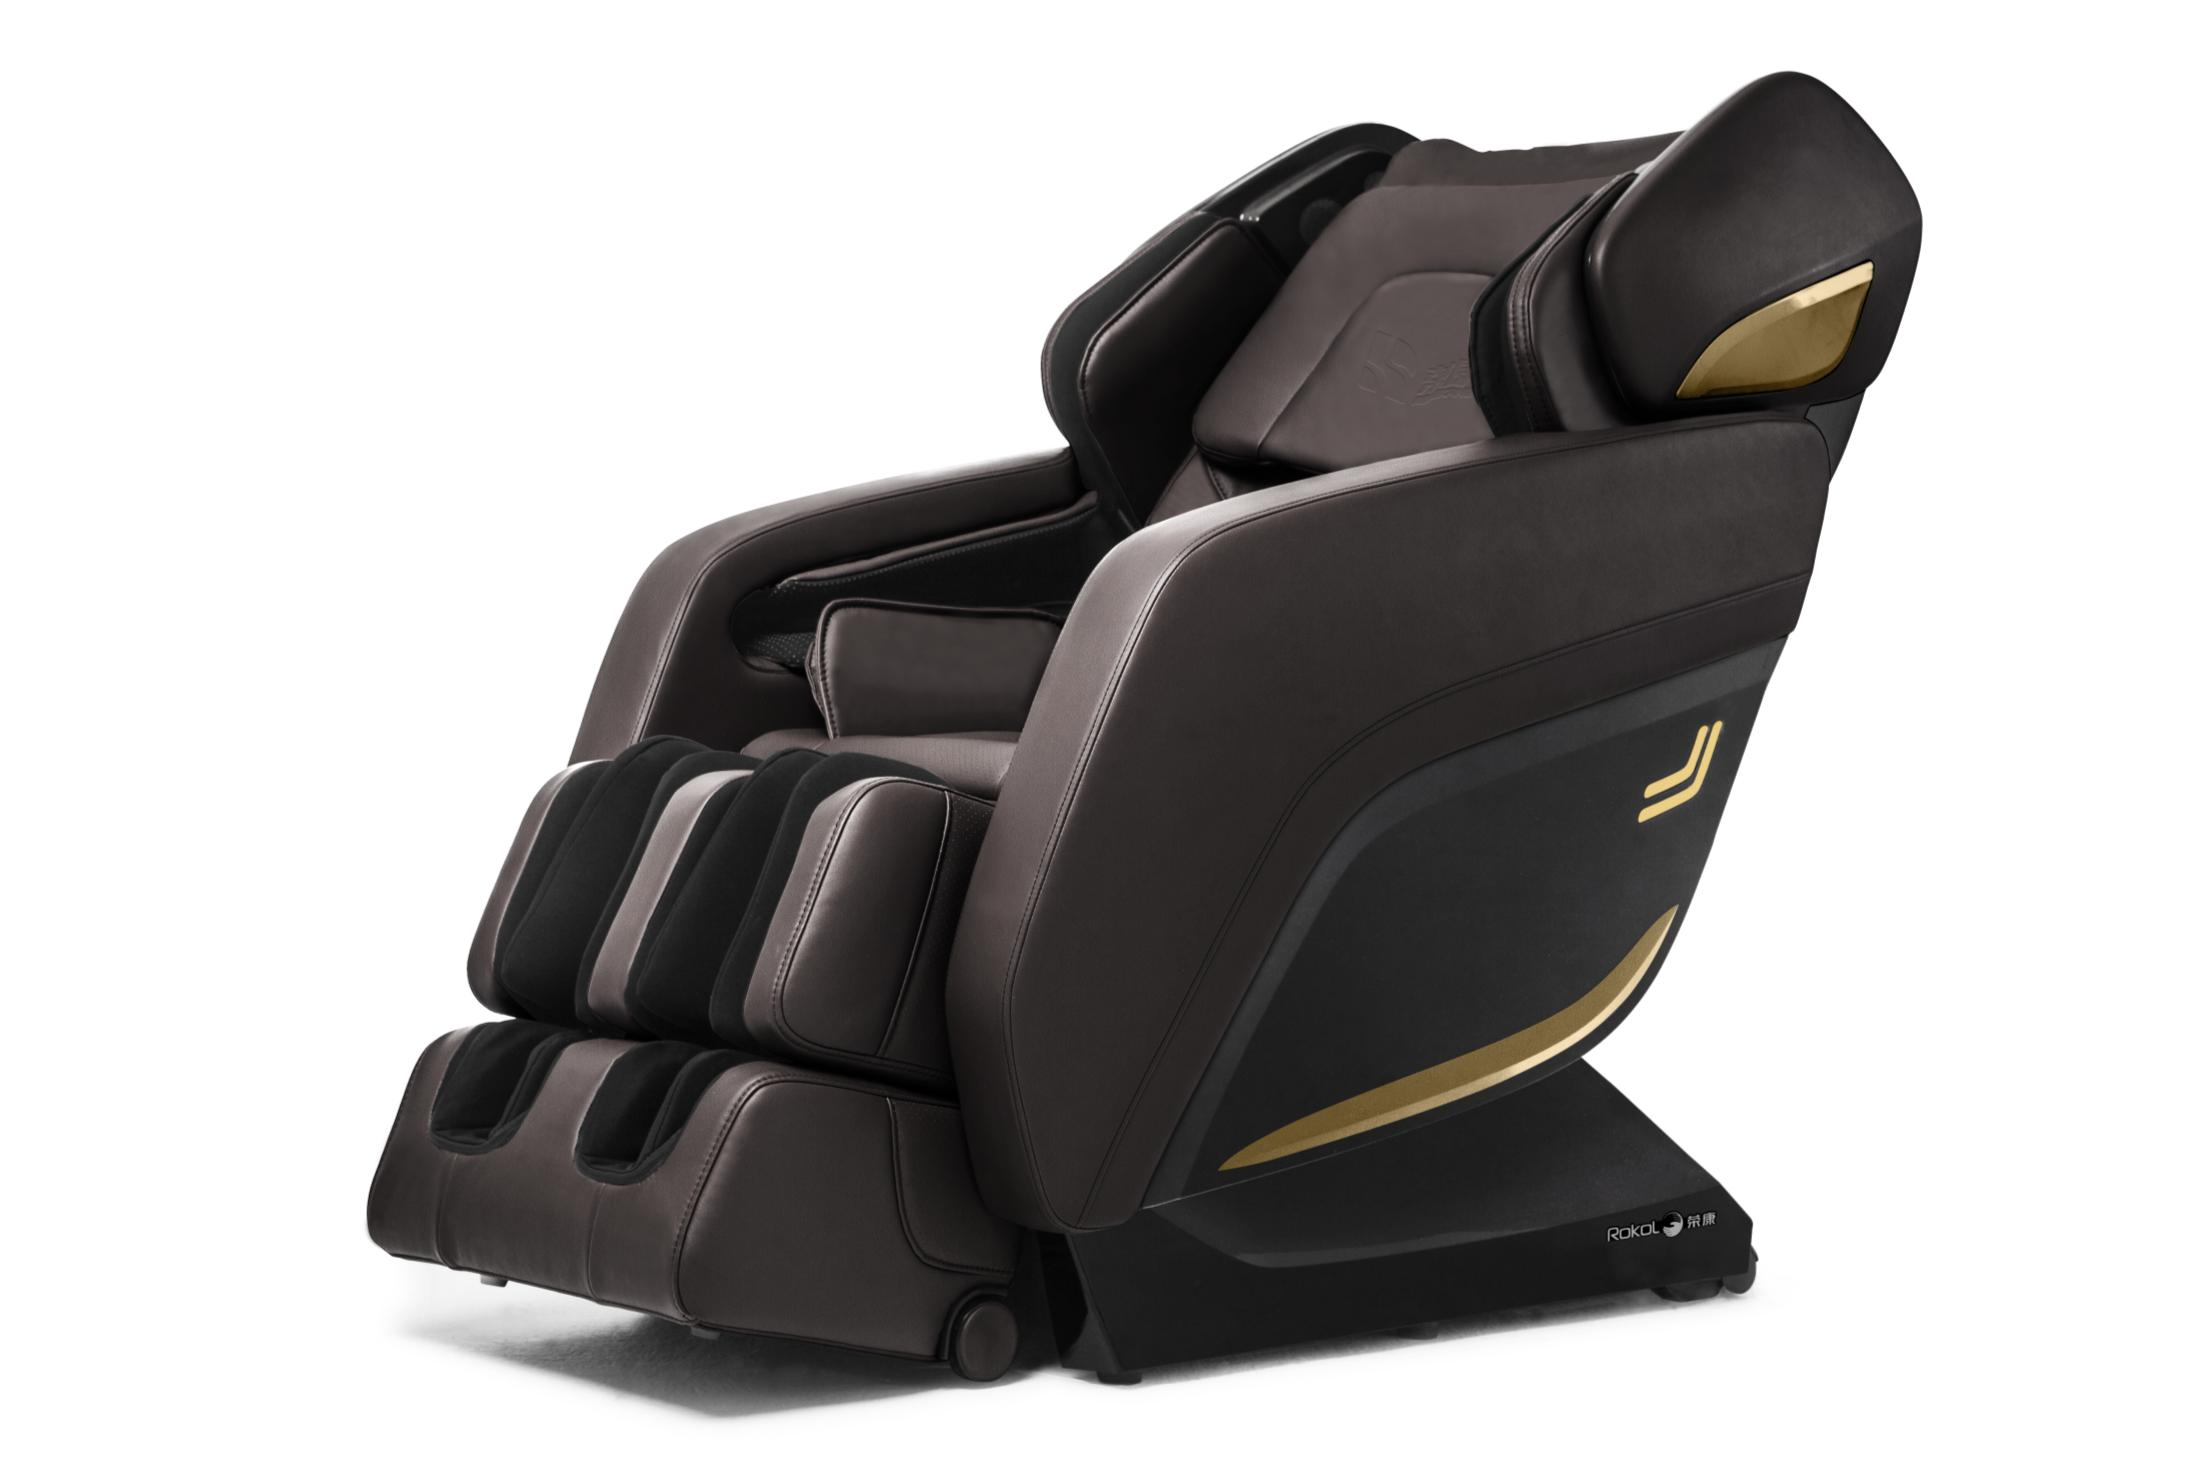 Hypnotherapy Portable Massage Chairs Hypnotherapy Portable